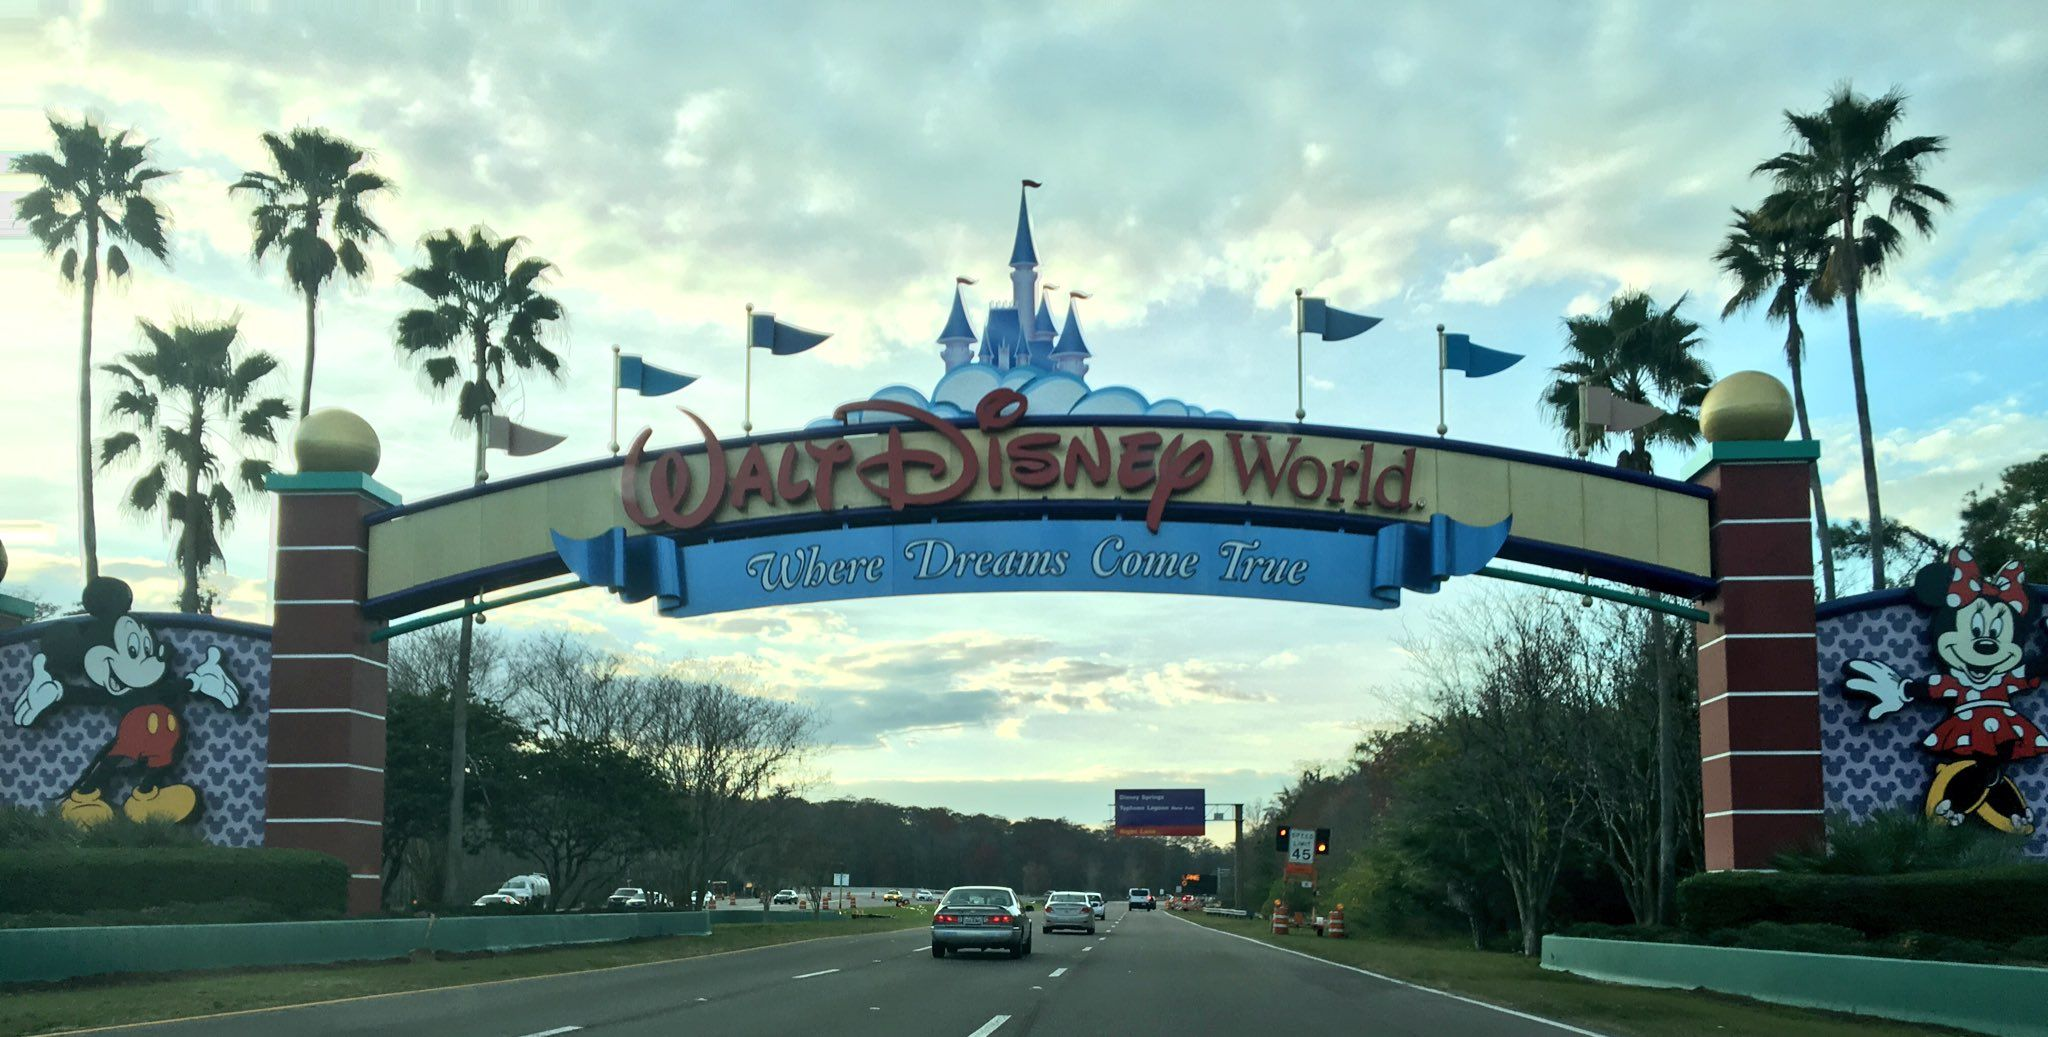 About to go live from @WDWToday on our Facebook page! Tune in! https://t.co/5EuTvVmuxq https://t.co/kBU30vP5Z9